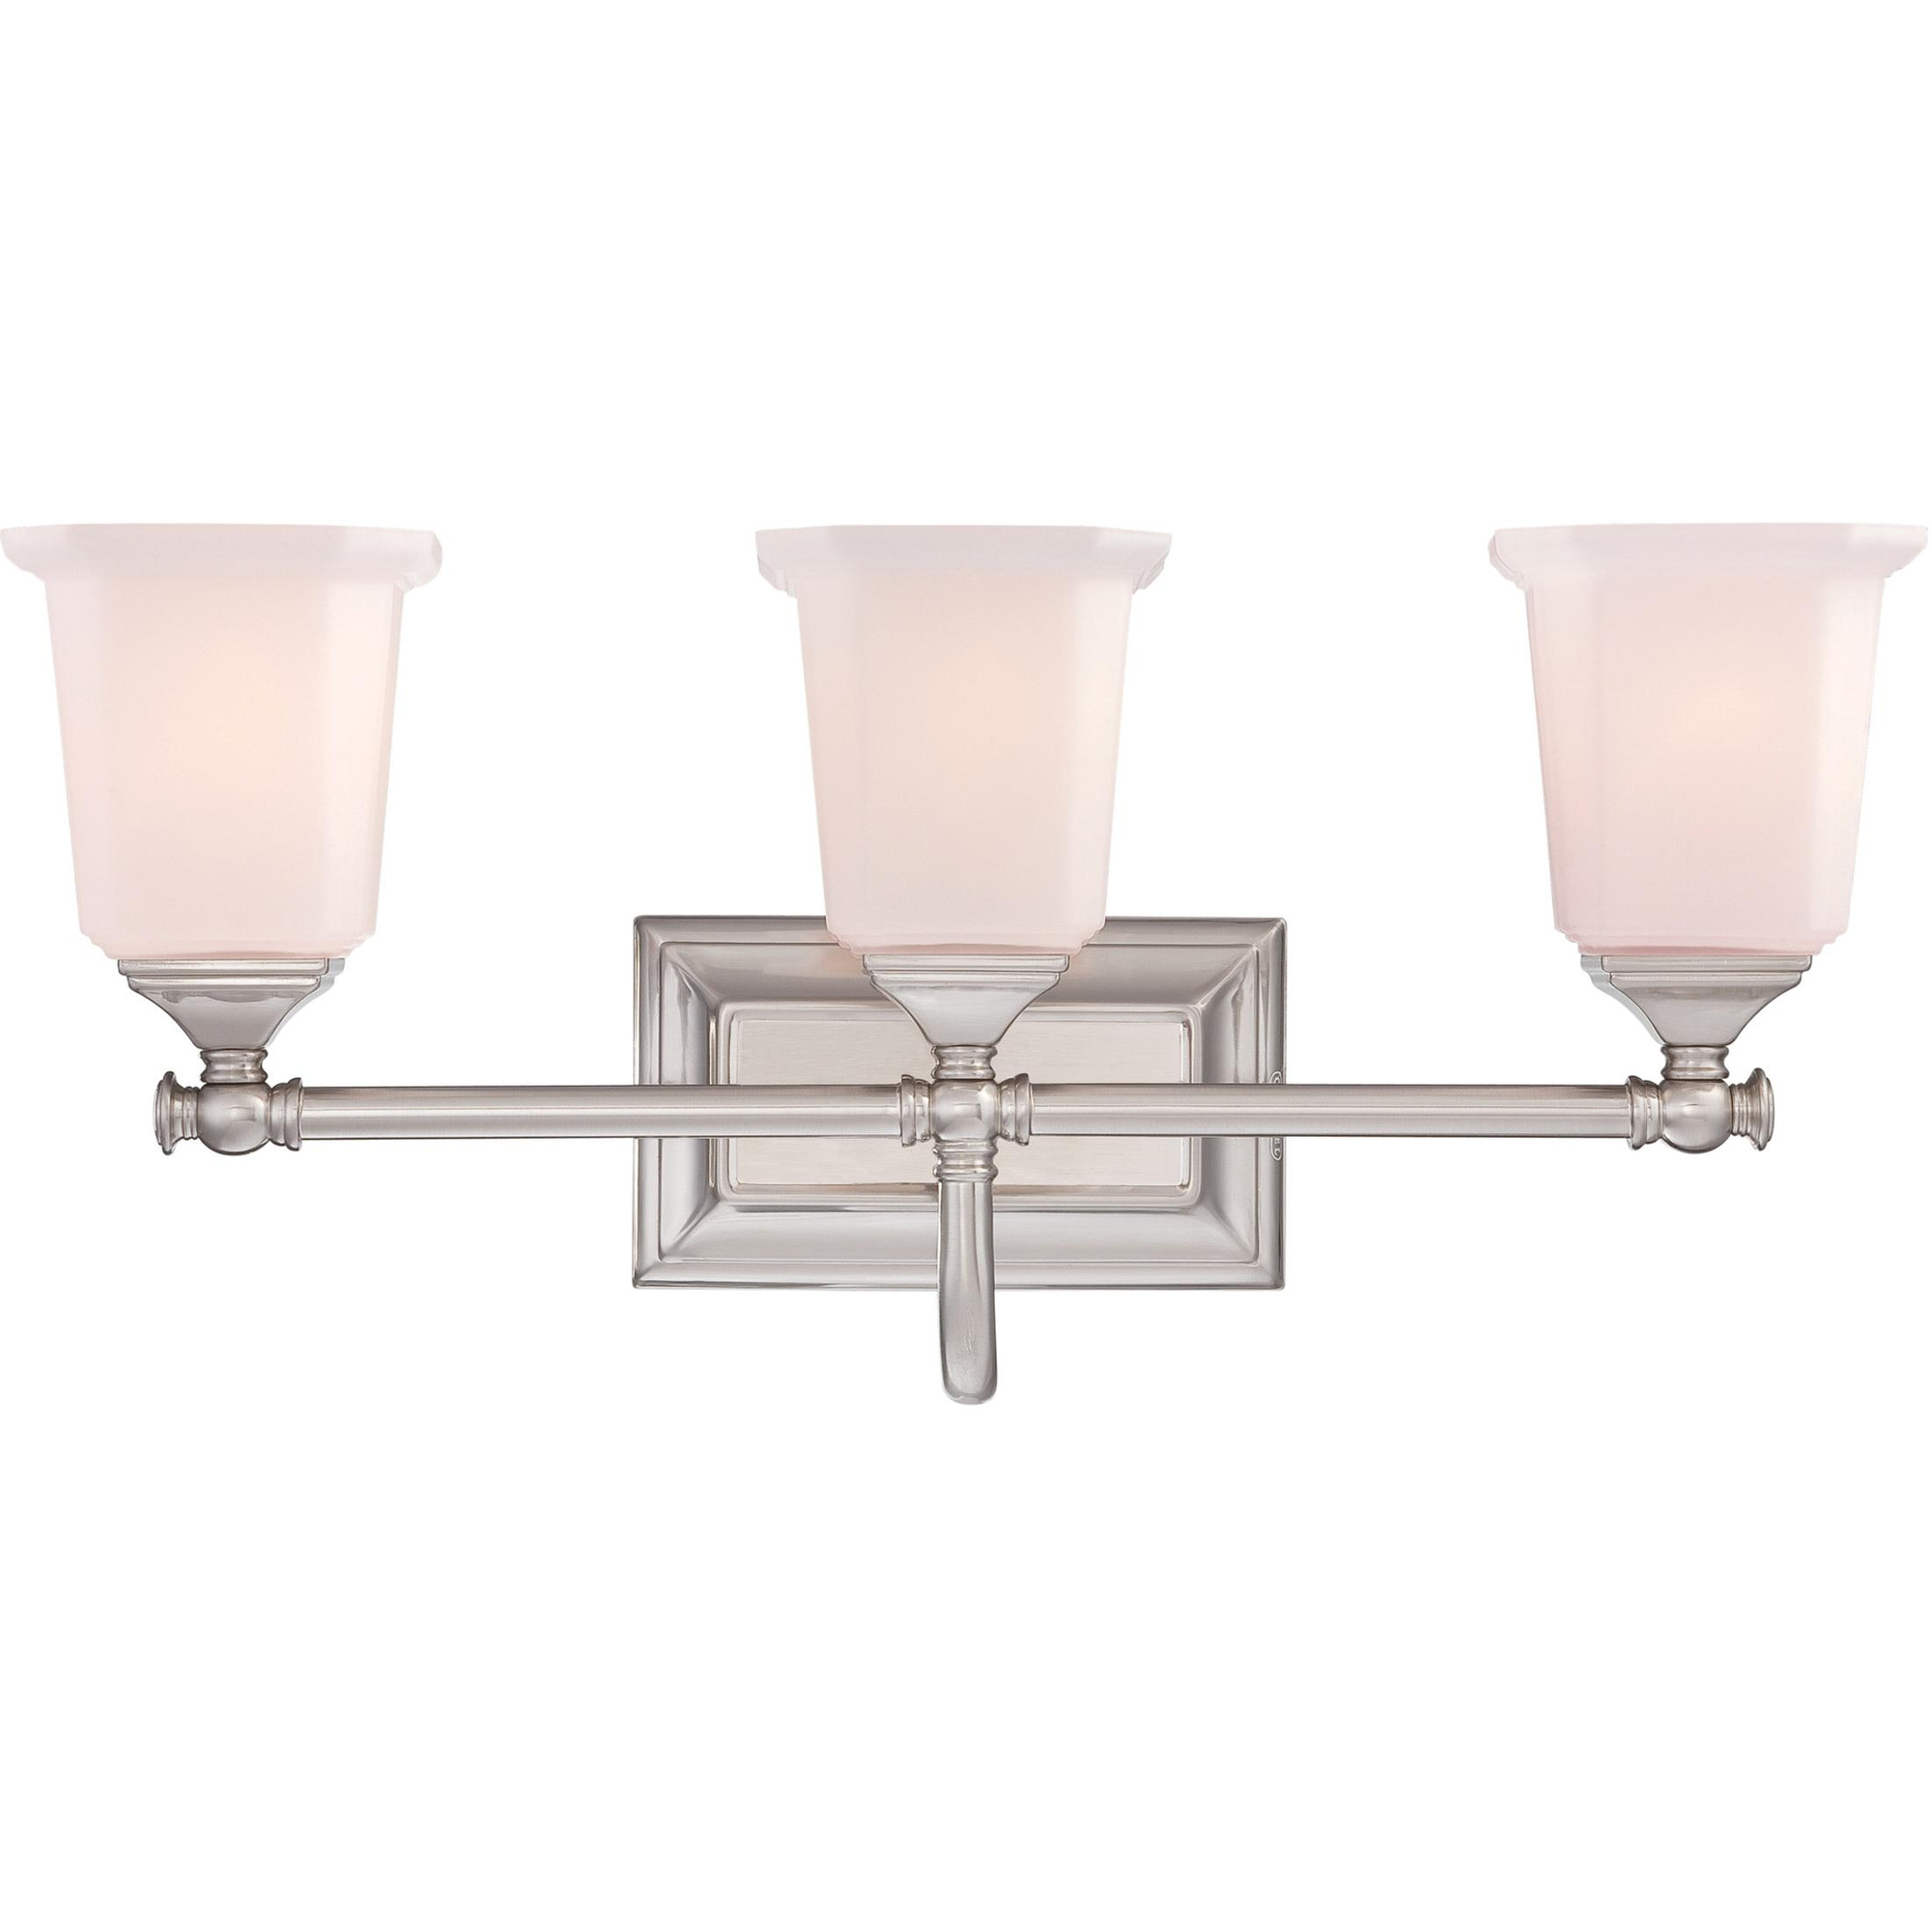 Quoizel Lighting Nl8603bn 3 Light Traditional Clic Bath Fixture 100 23 Watt 120 Volt Brushed Nickel Nicholas